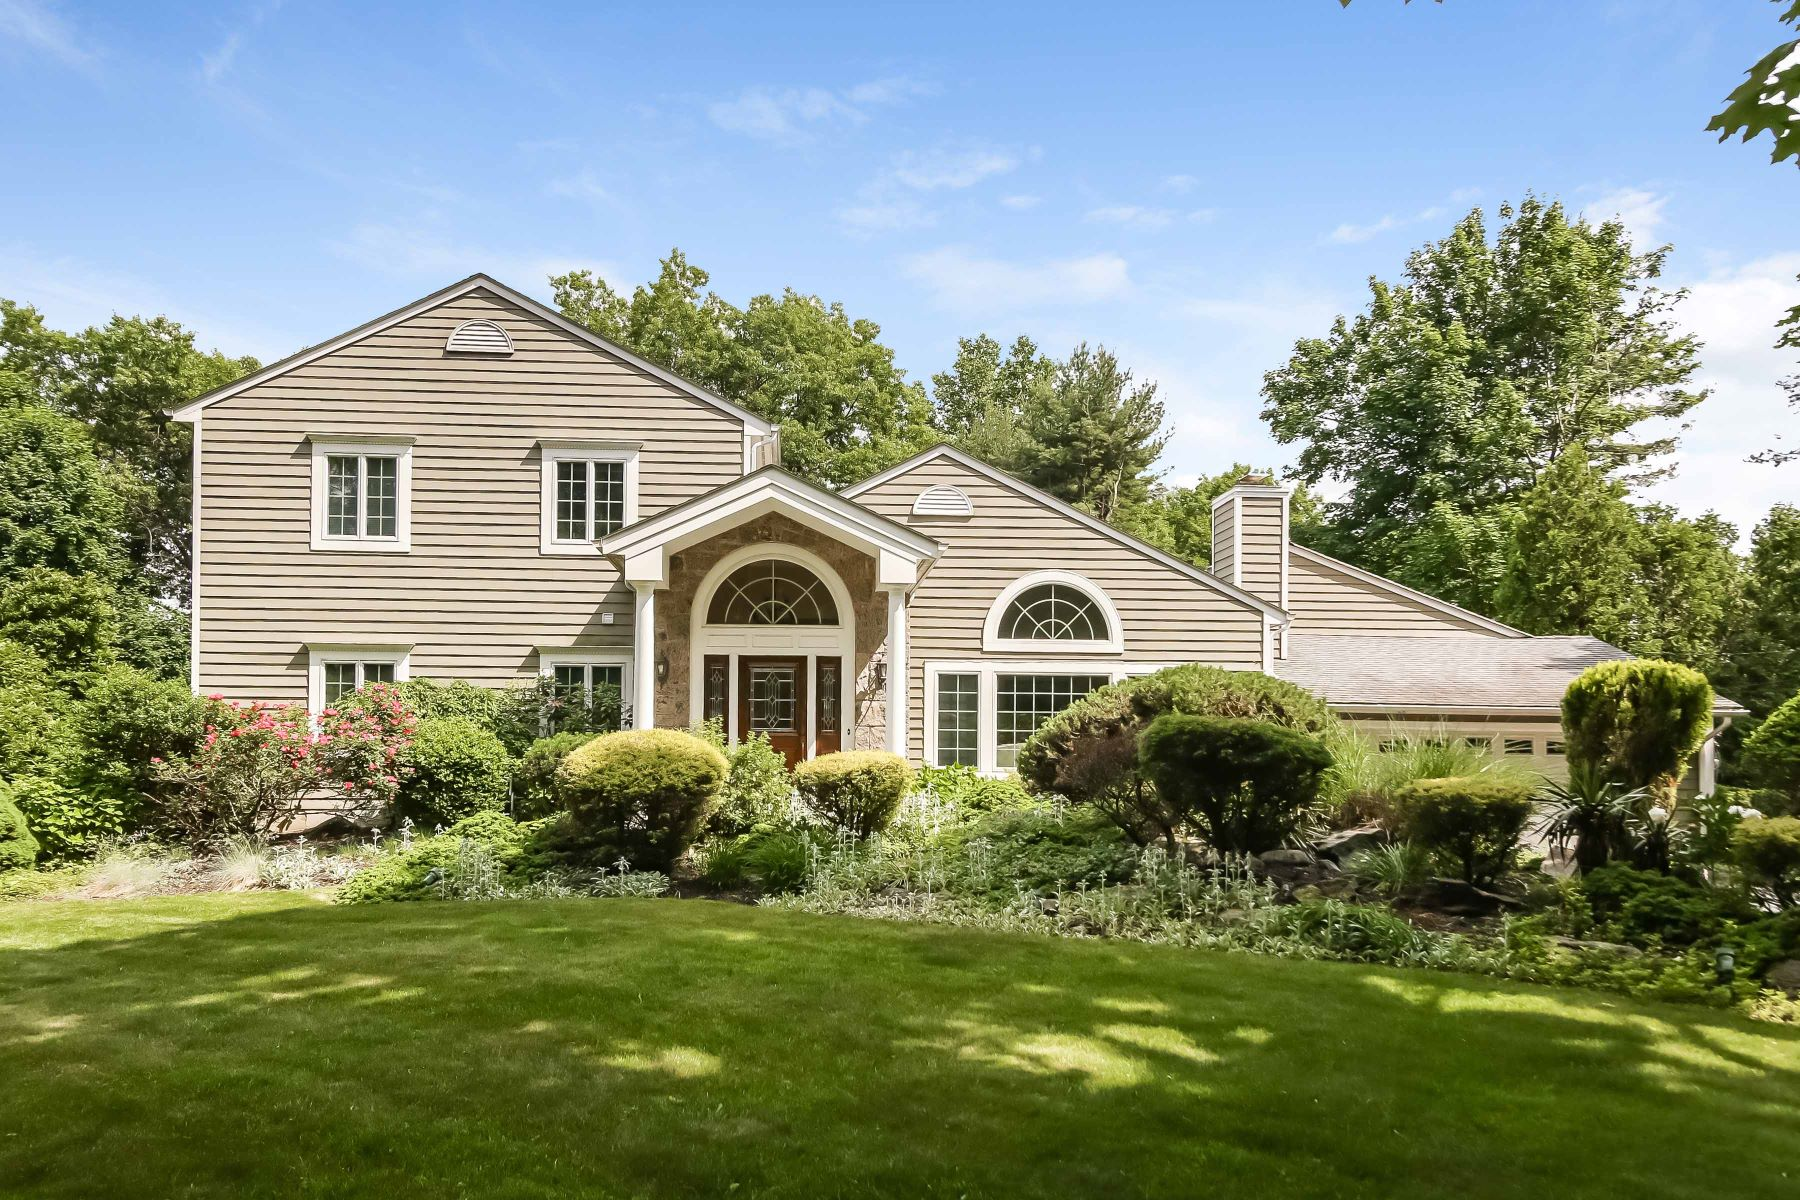 Single Family Home for Sale at Beautifully Renovated Contemporary Colonial 8 Windsong Road Ardsley, New York 10502 United States